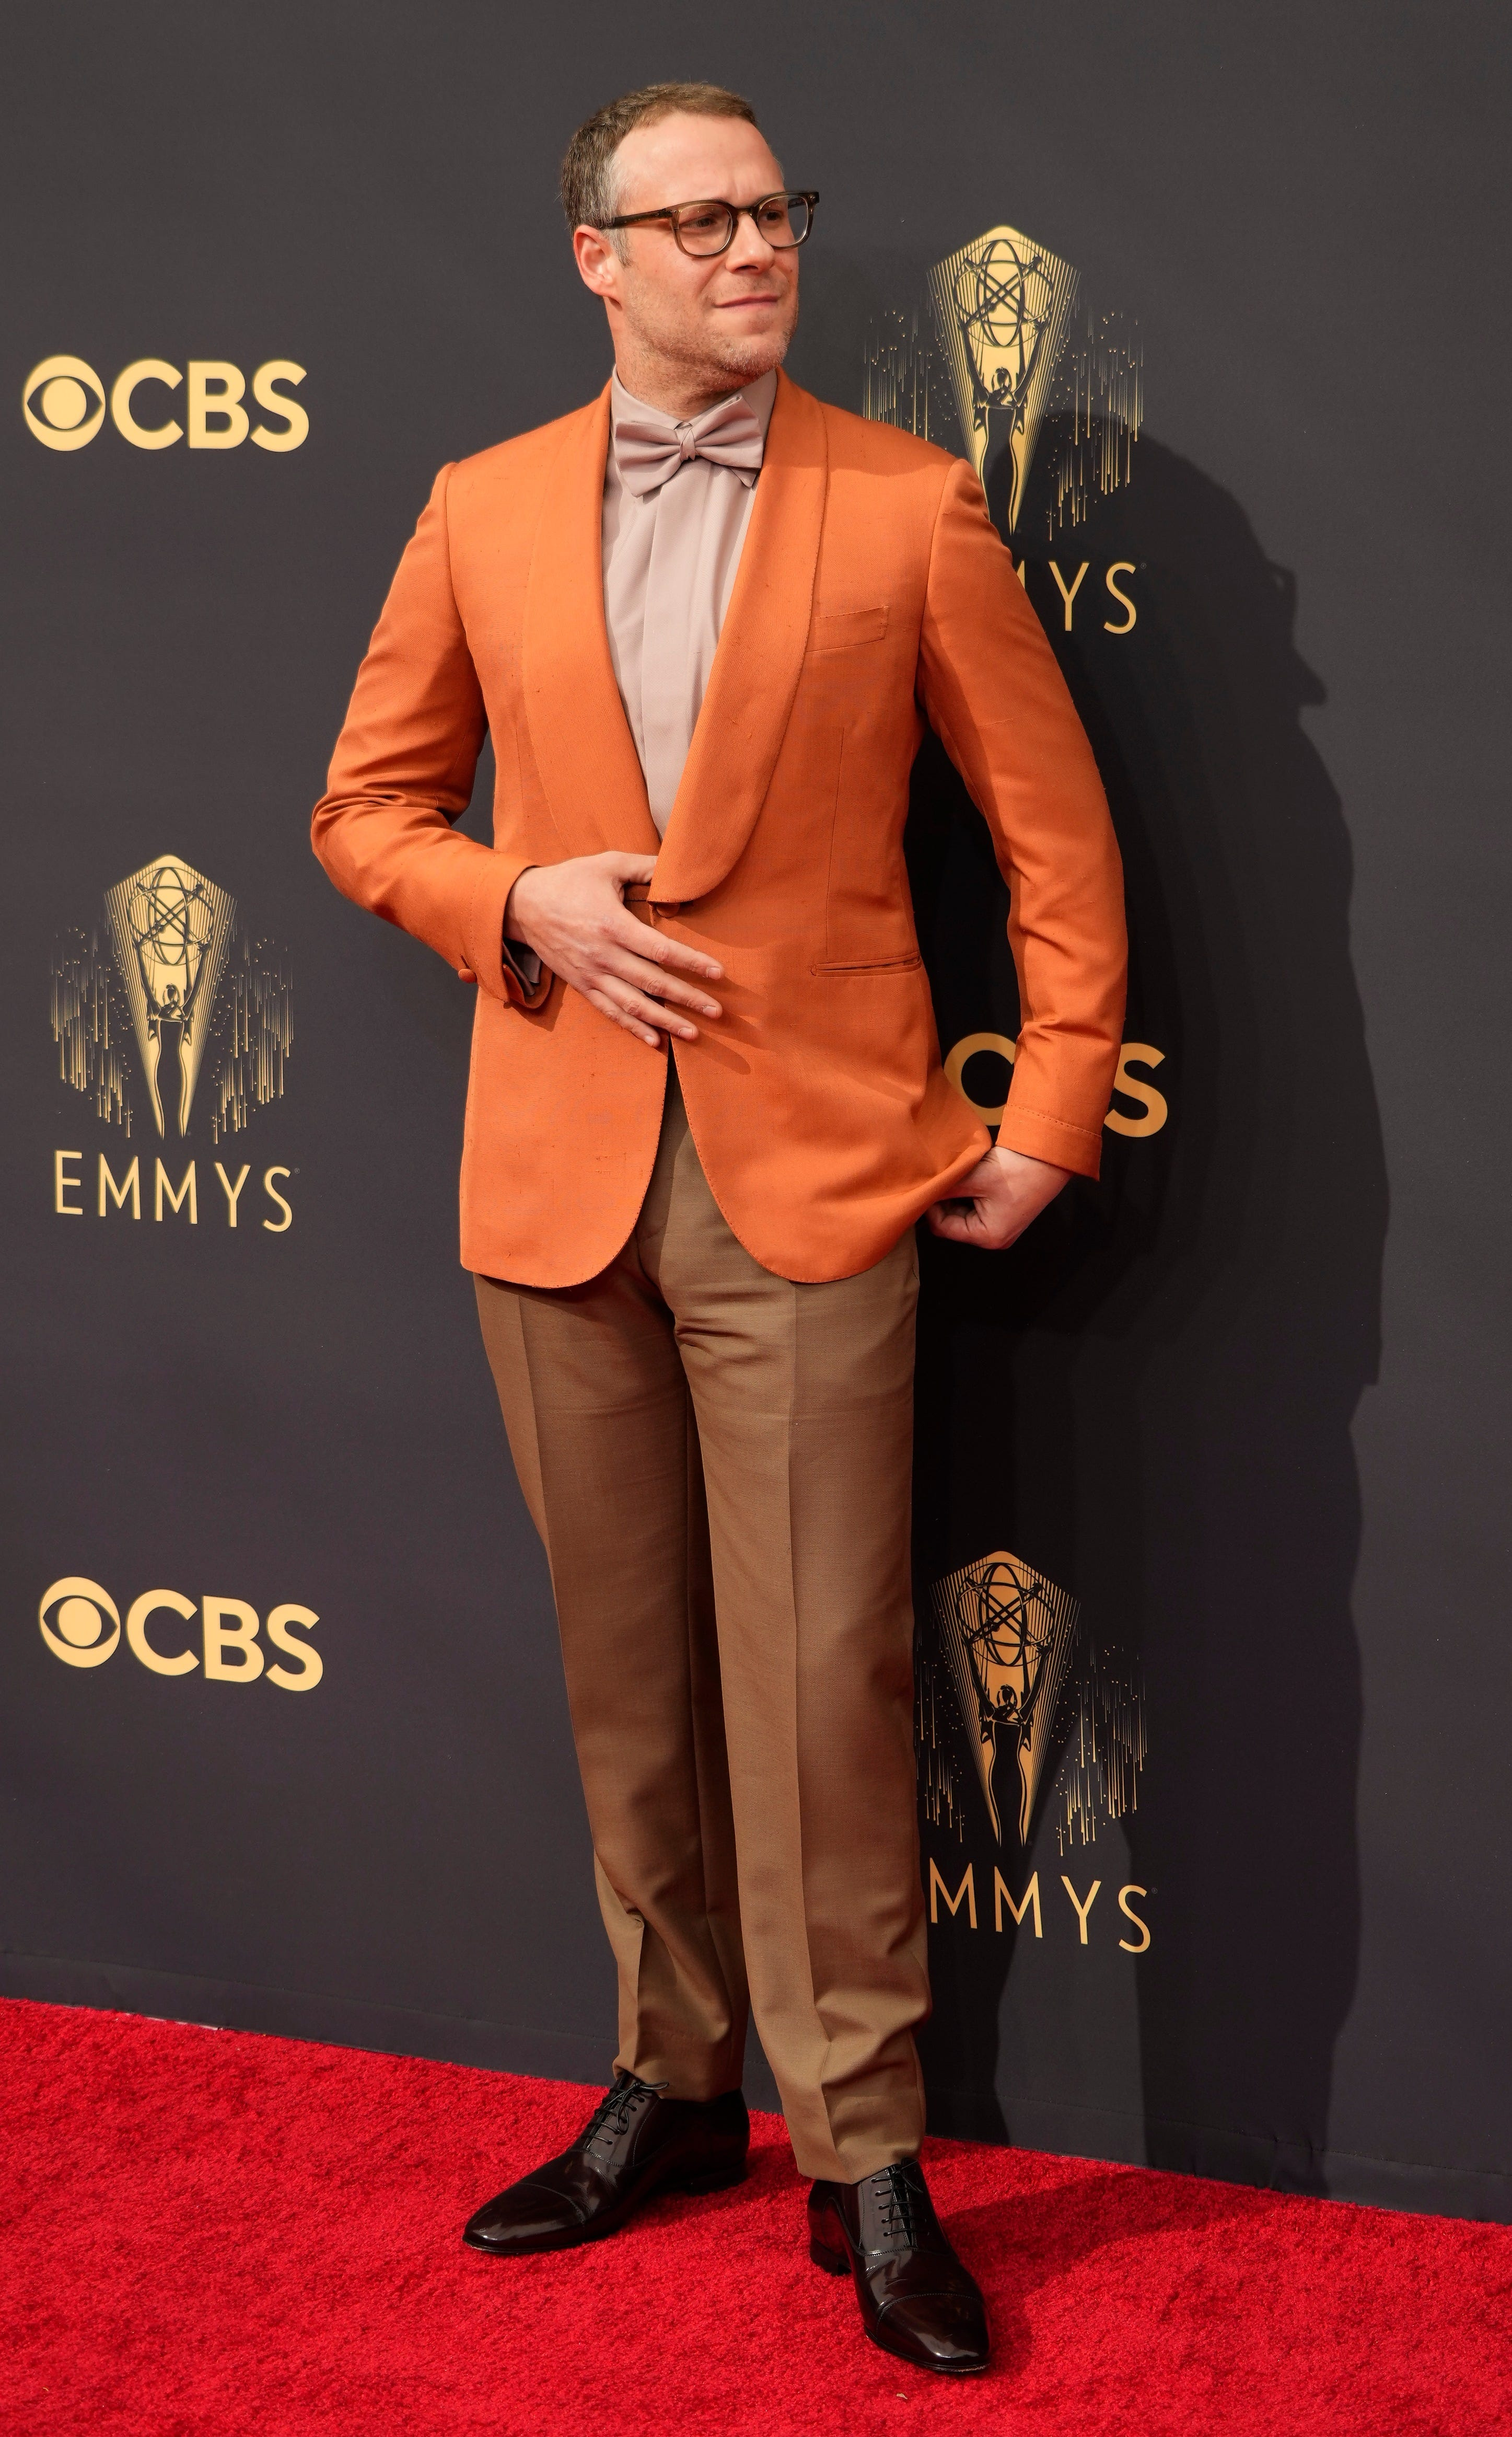 It s deeply frustrating : Emmys producers react to Seth Rogen s COVID protocol jokes at show